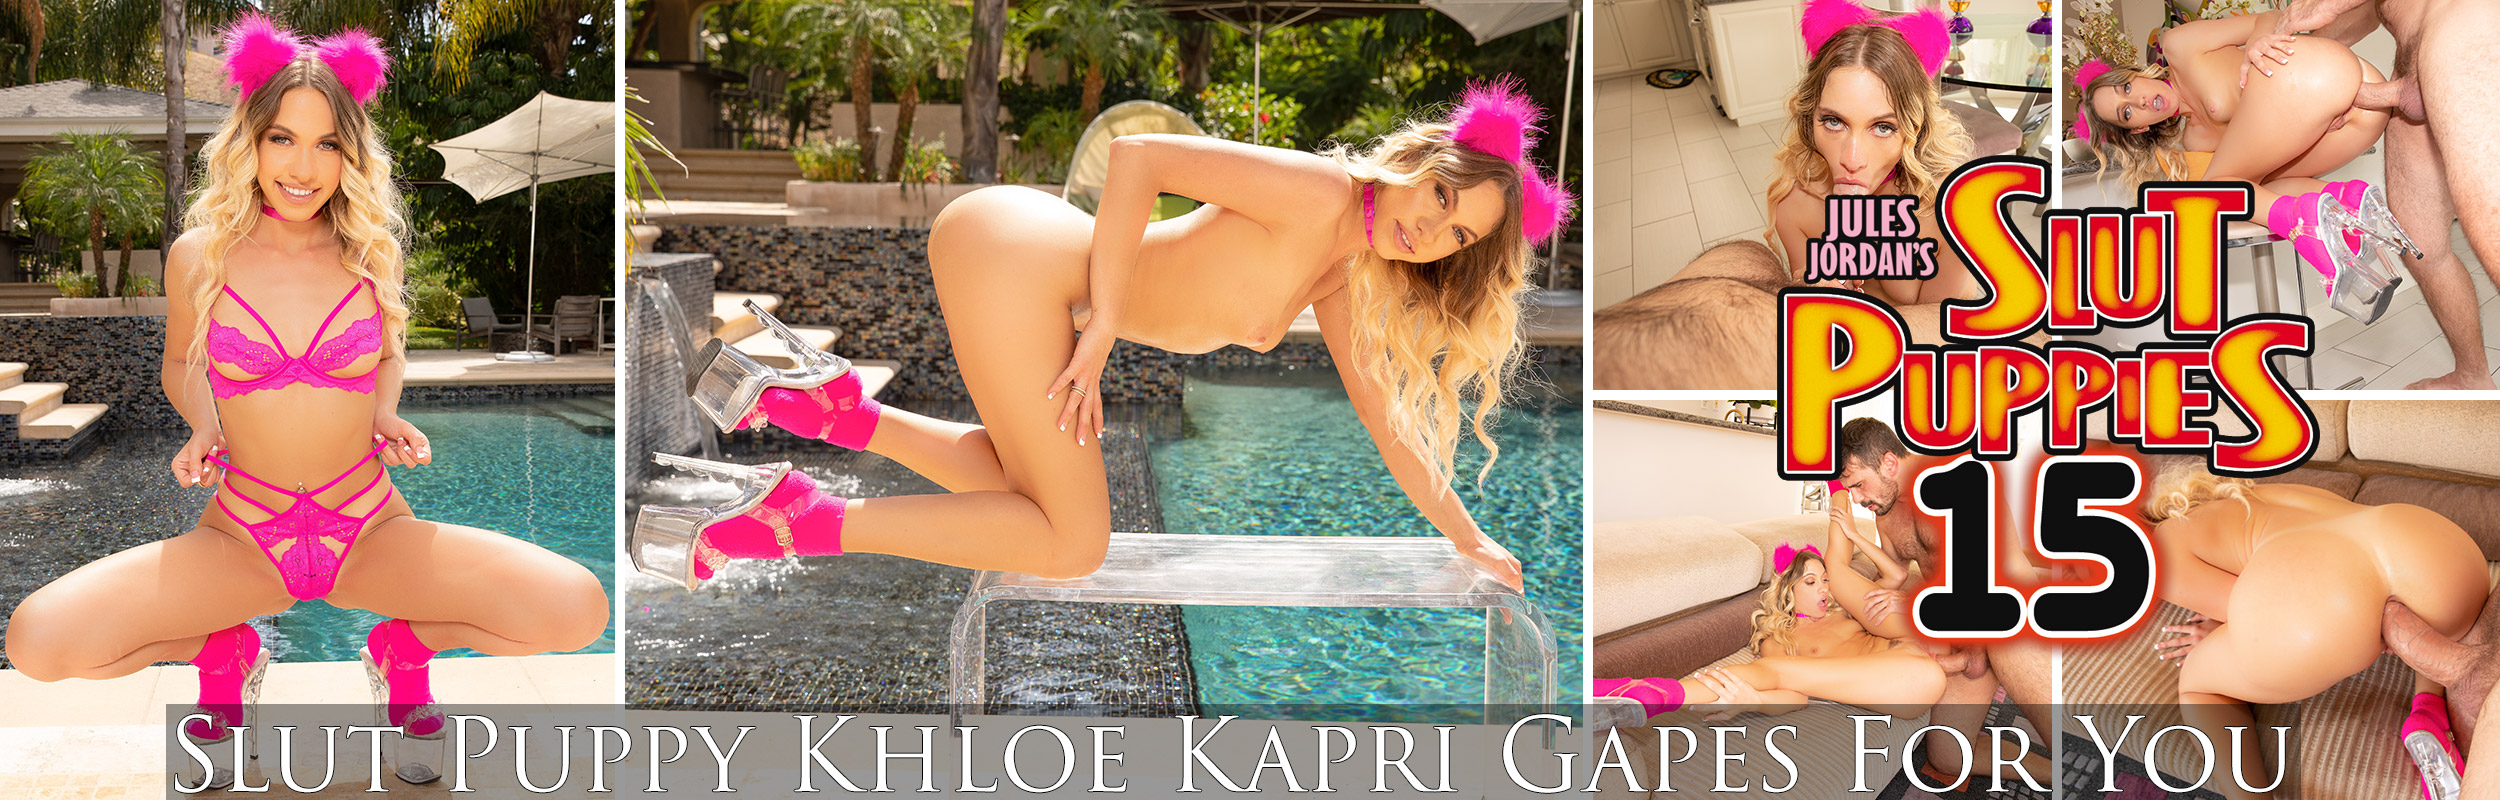 Slut Puppy Khloe Kapri Gapes For You